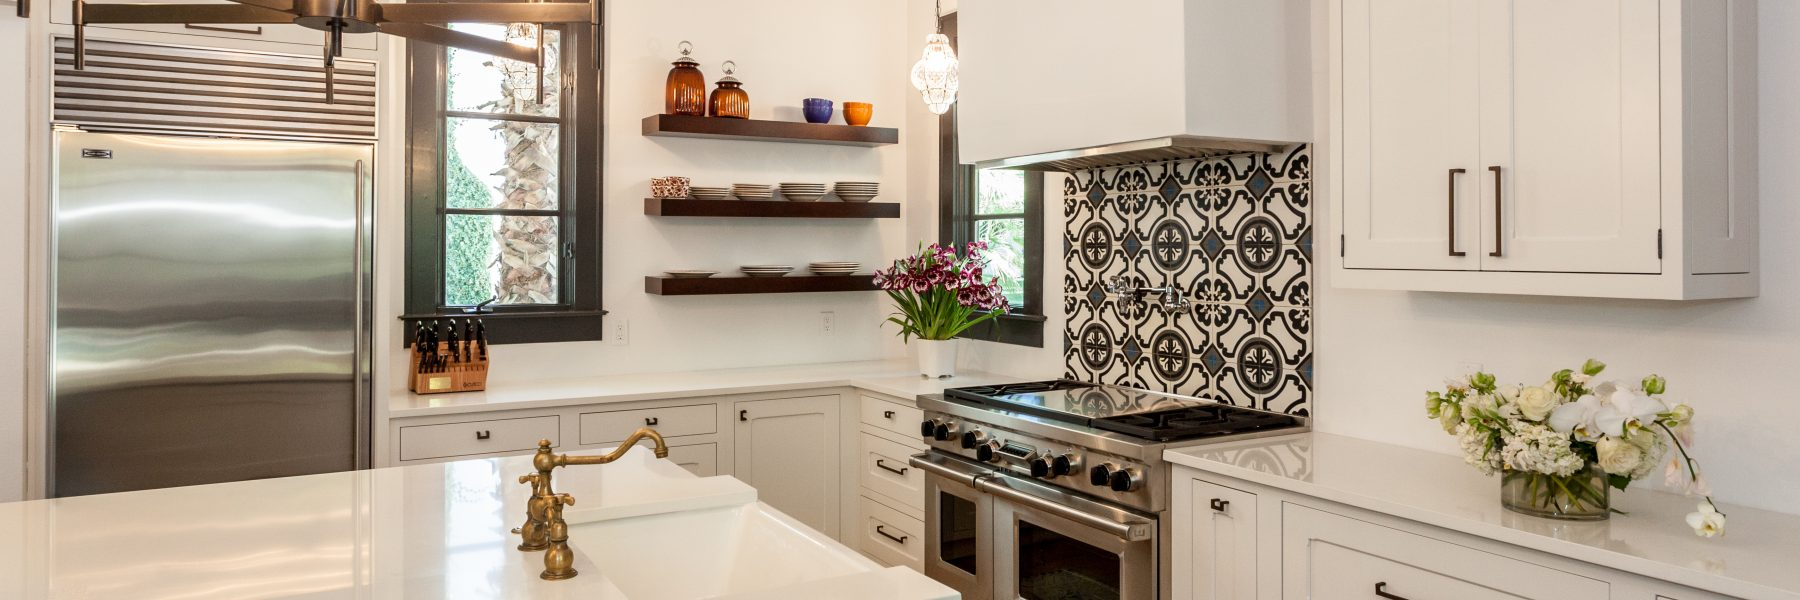 cropped-kitchen-cabinetry-1601-forest-trail-78703-31.jpg | Crestwood ...